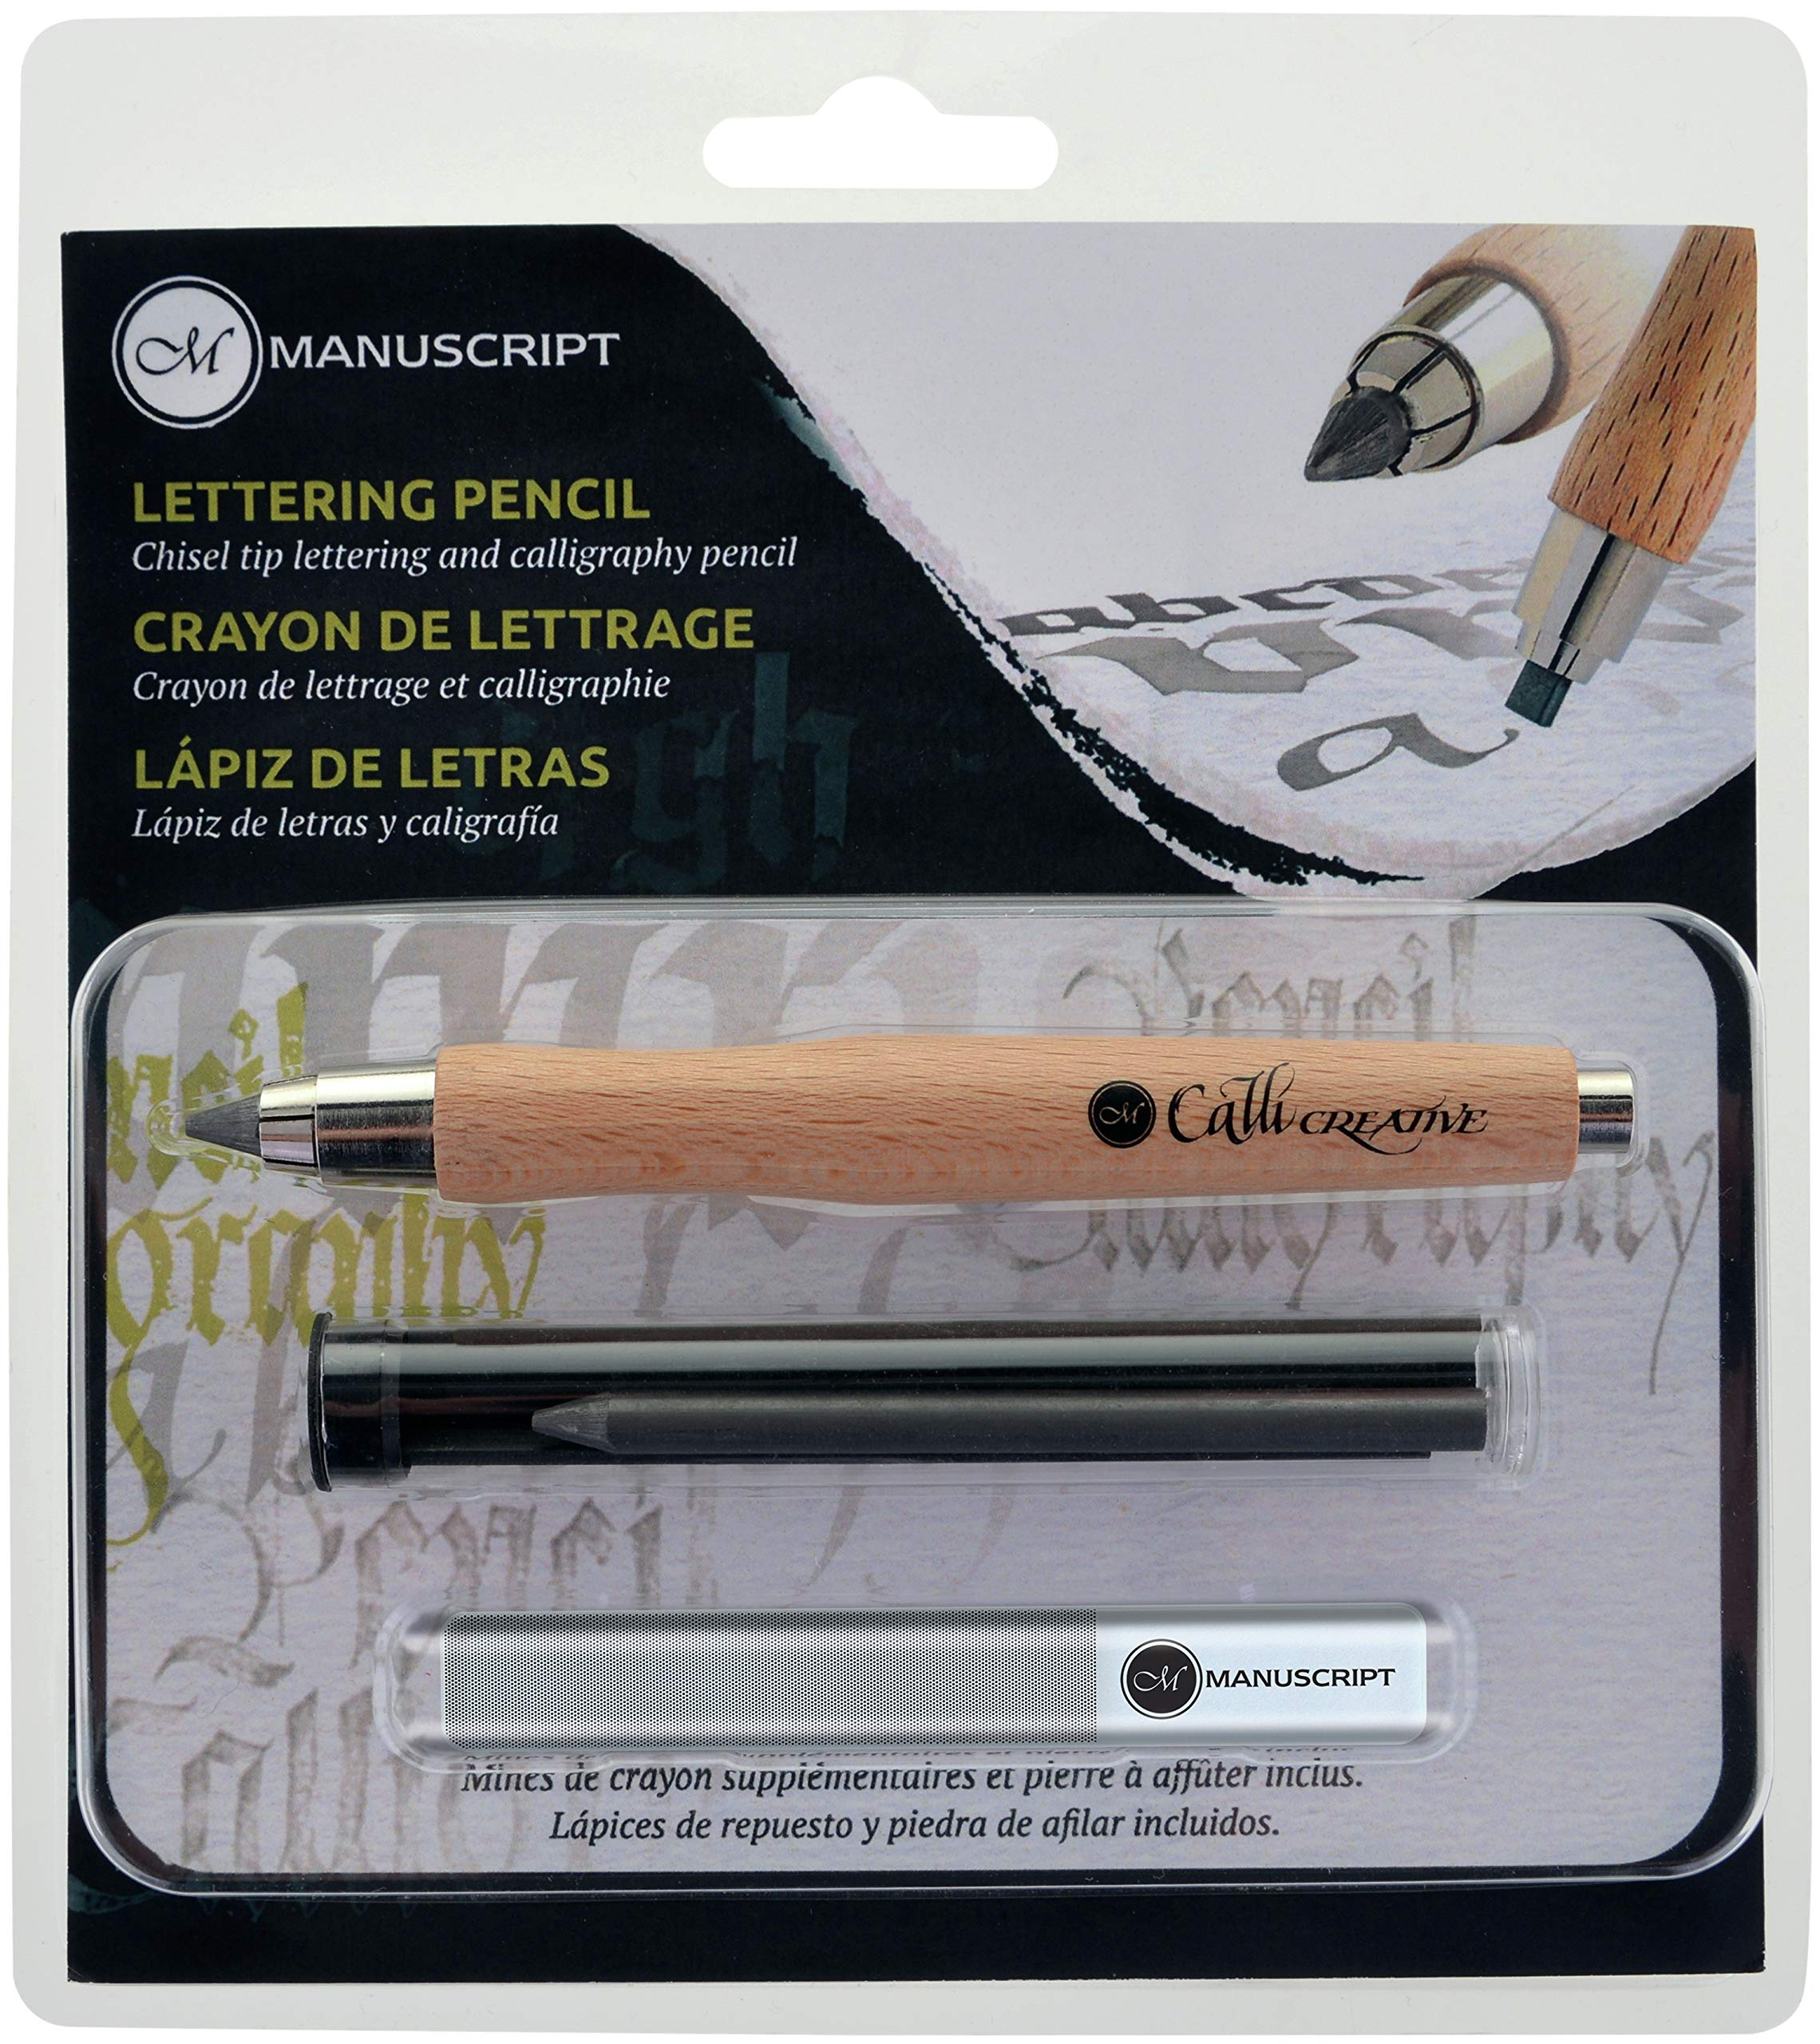 Manuscript CalliCreative Lettering Pencil Set 3/Pkg-Natural by Manuscript Pen (Image #1)